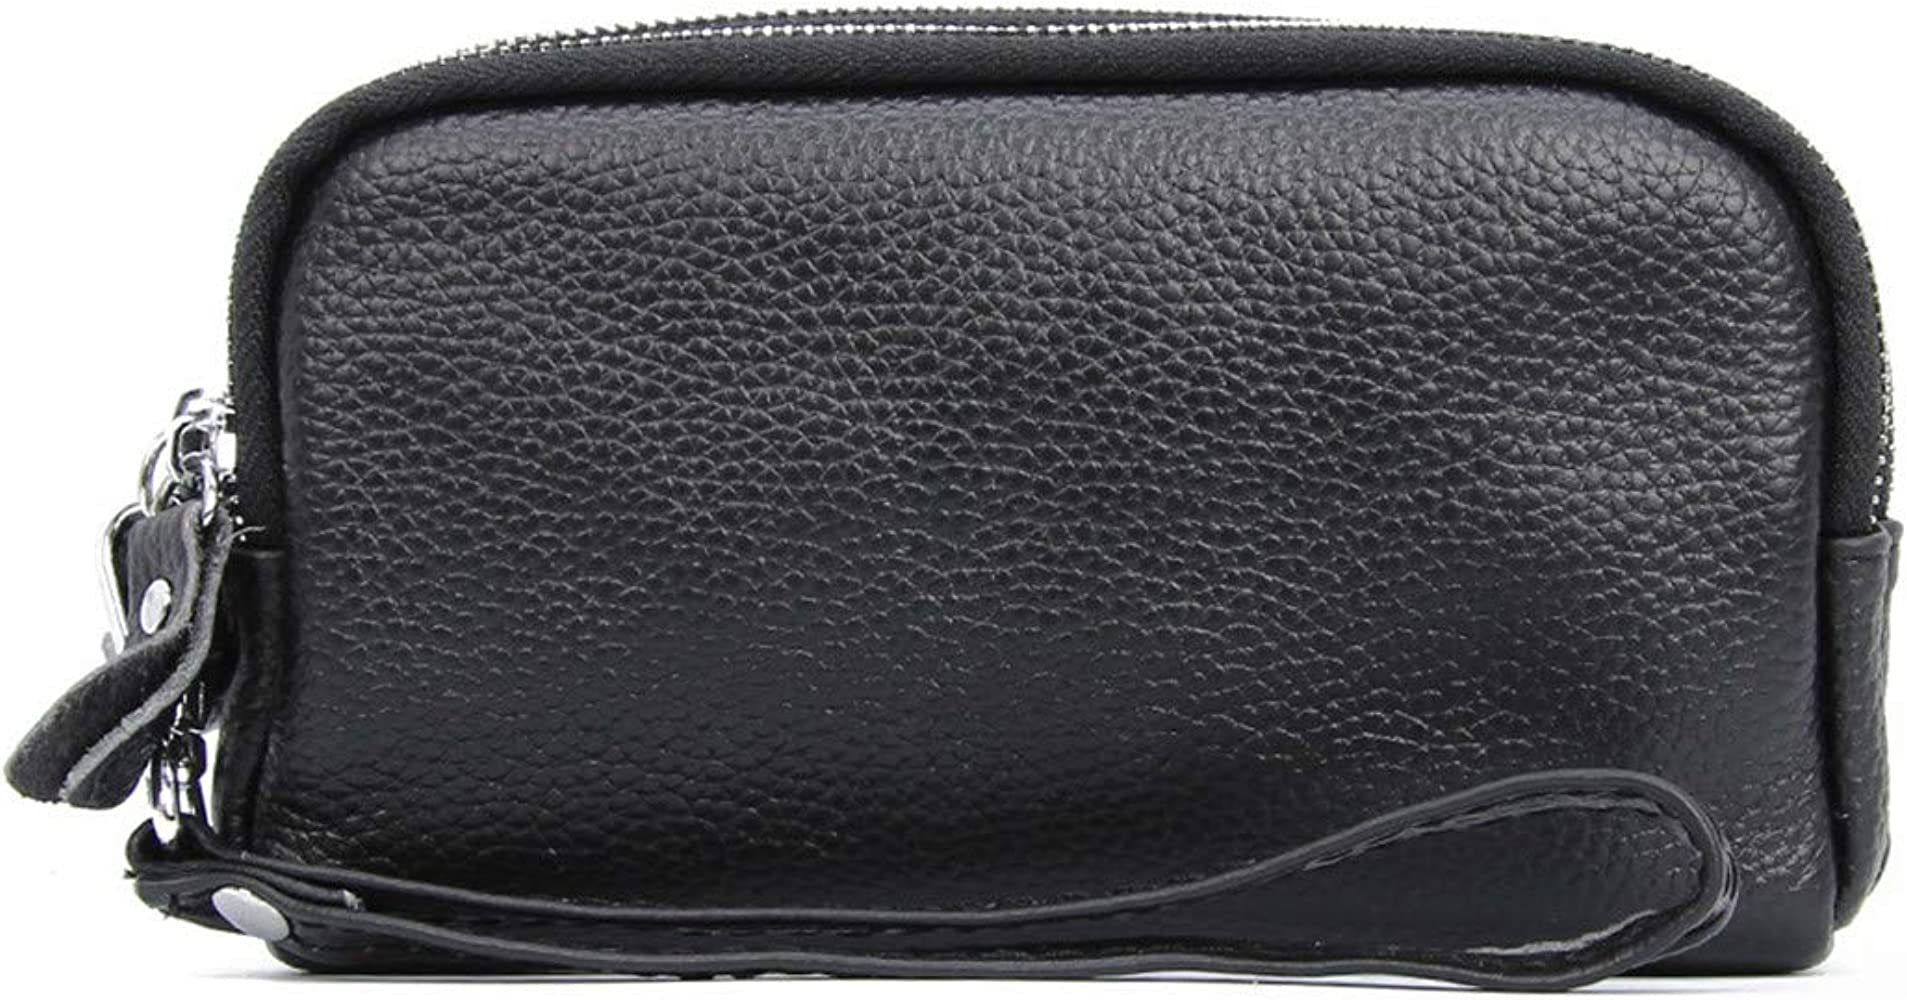 Andongnywell Womens Leather Wristlet Polished Pebbled Leather Double Clutch Wallet Signature Smartphone Purse